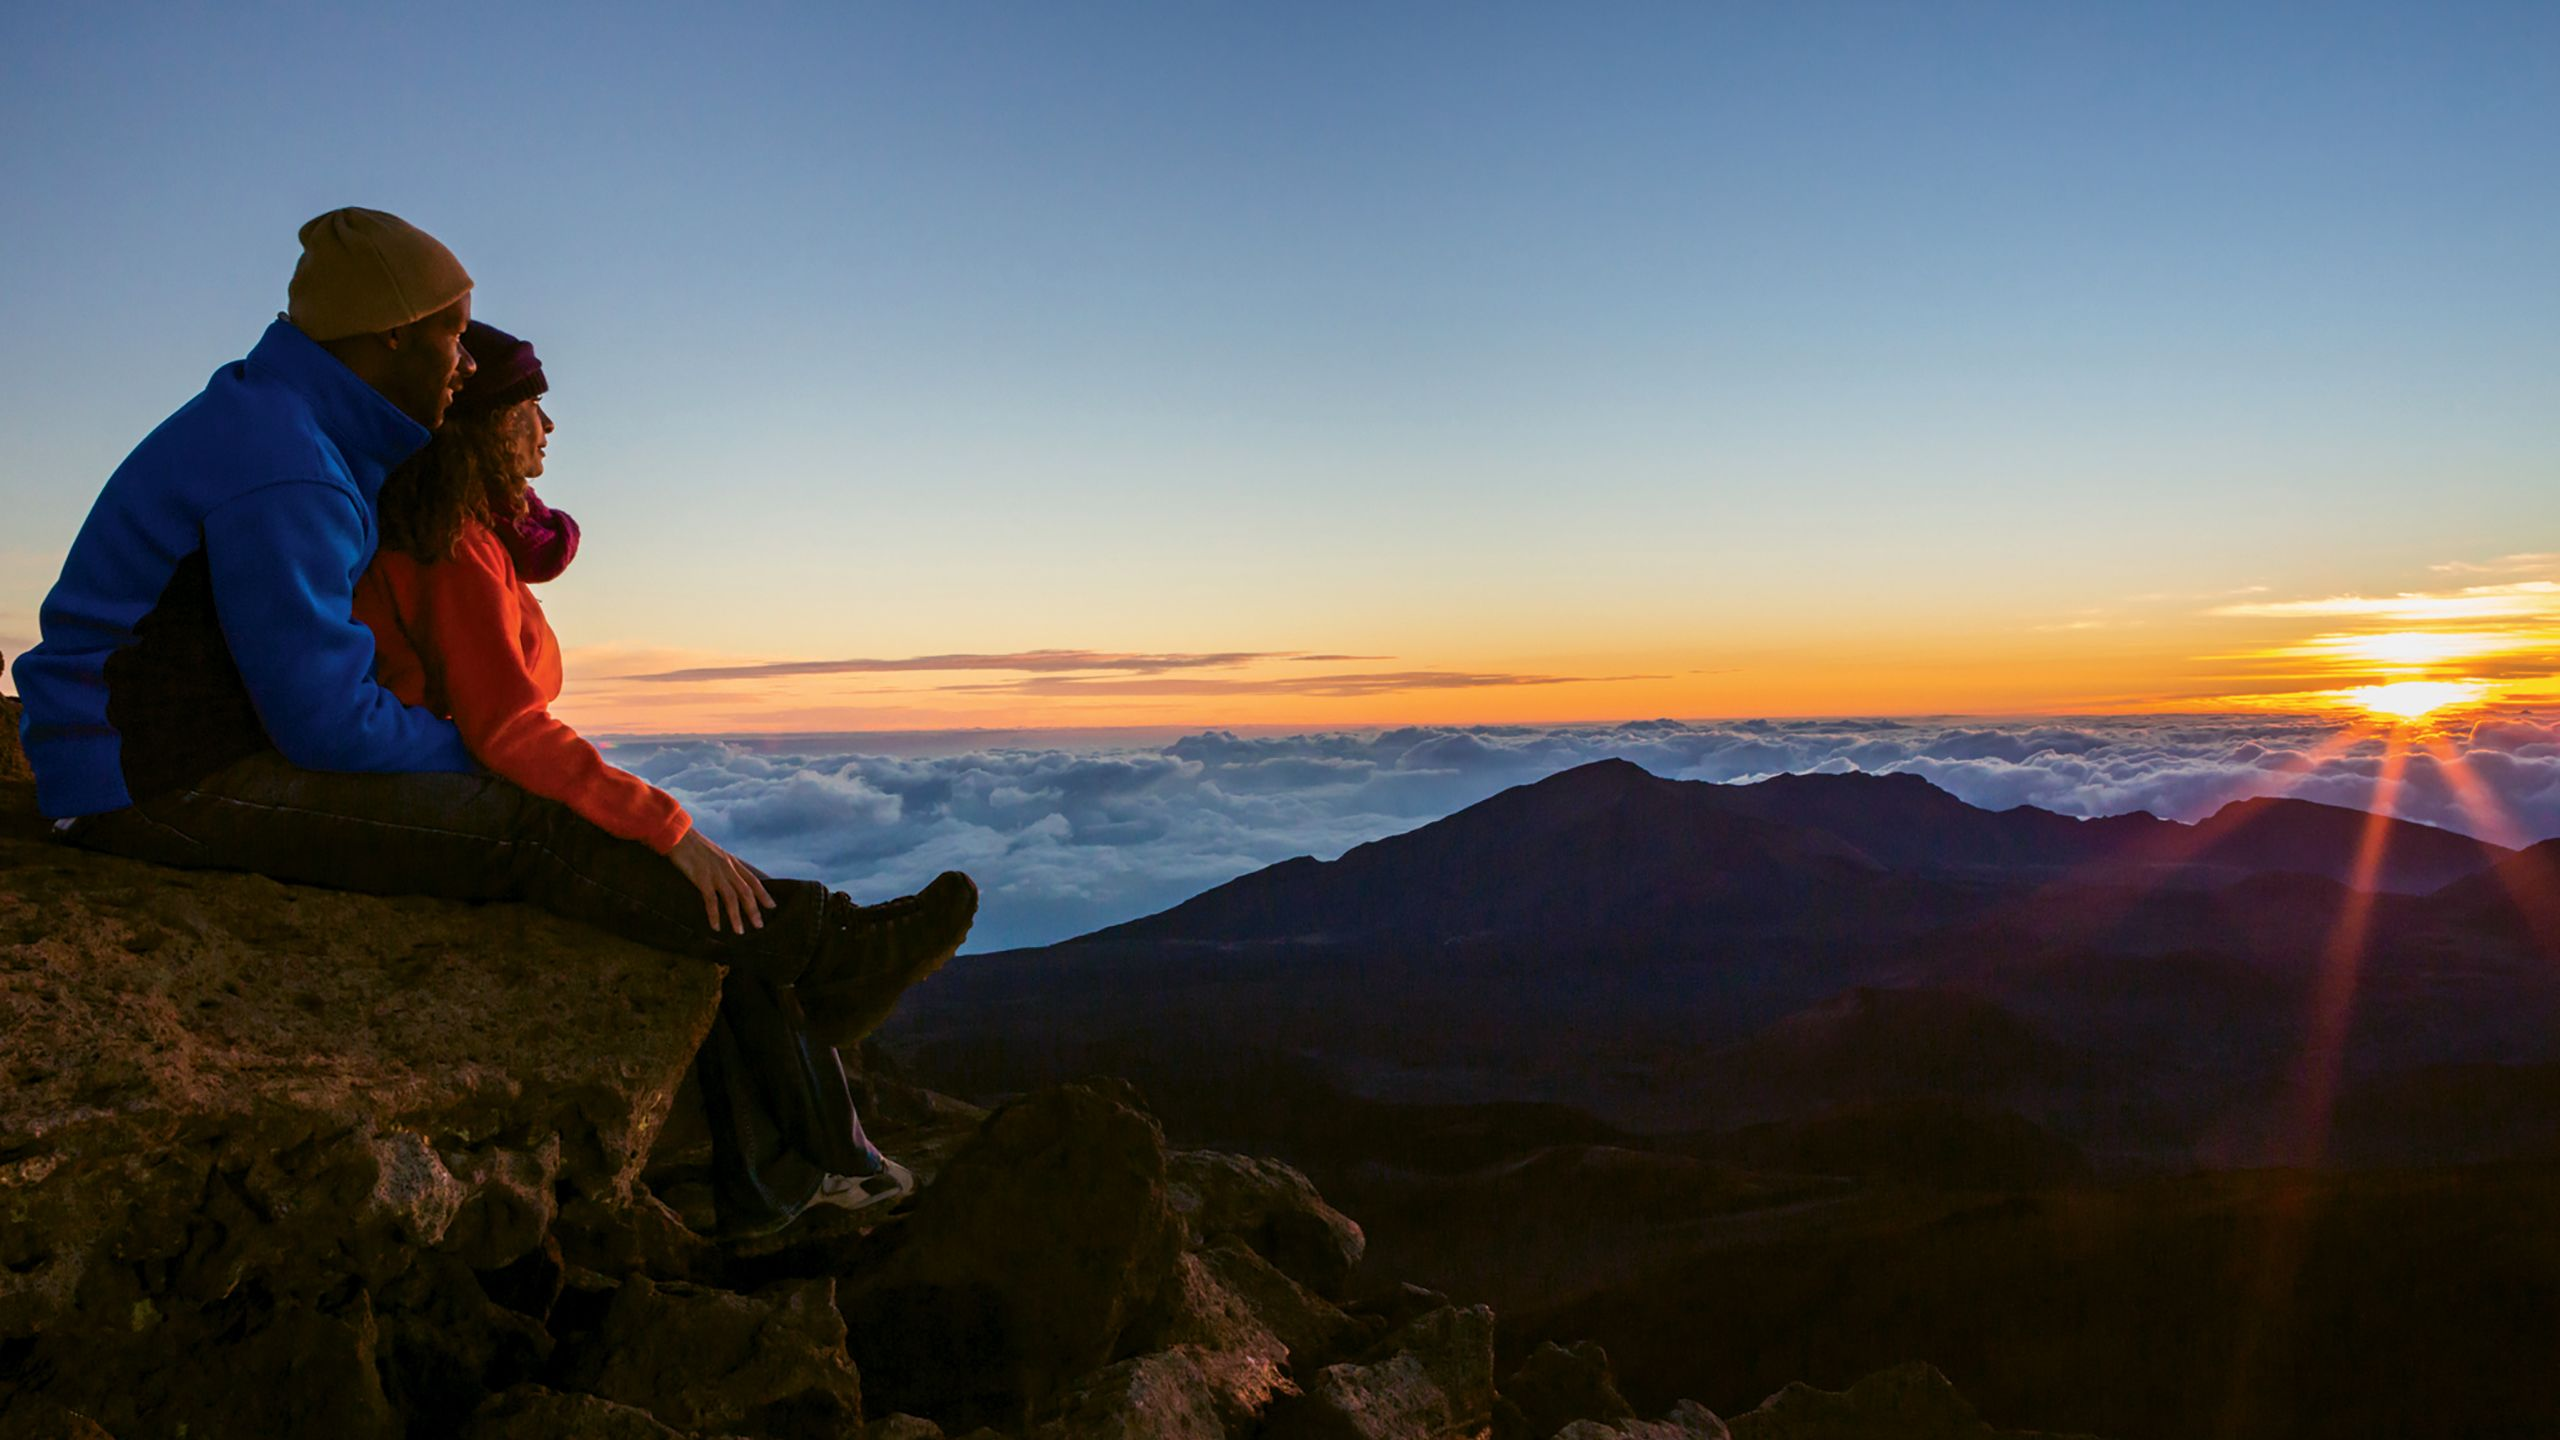 In 2017 a reservation system was instituted to control sunrise viewing crowds at Haleakala National Park on Maui. Photo by Tor Johnson/HTA